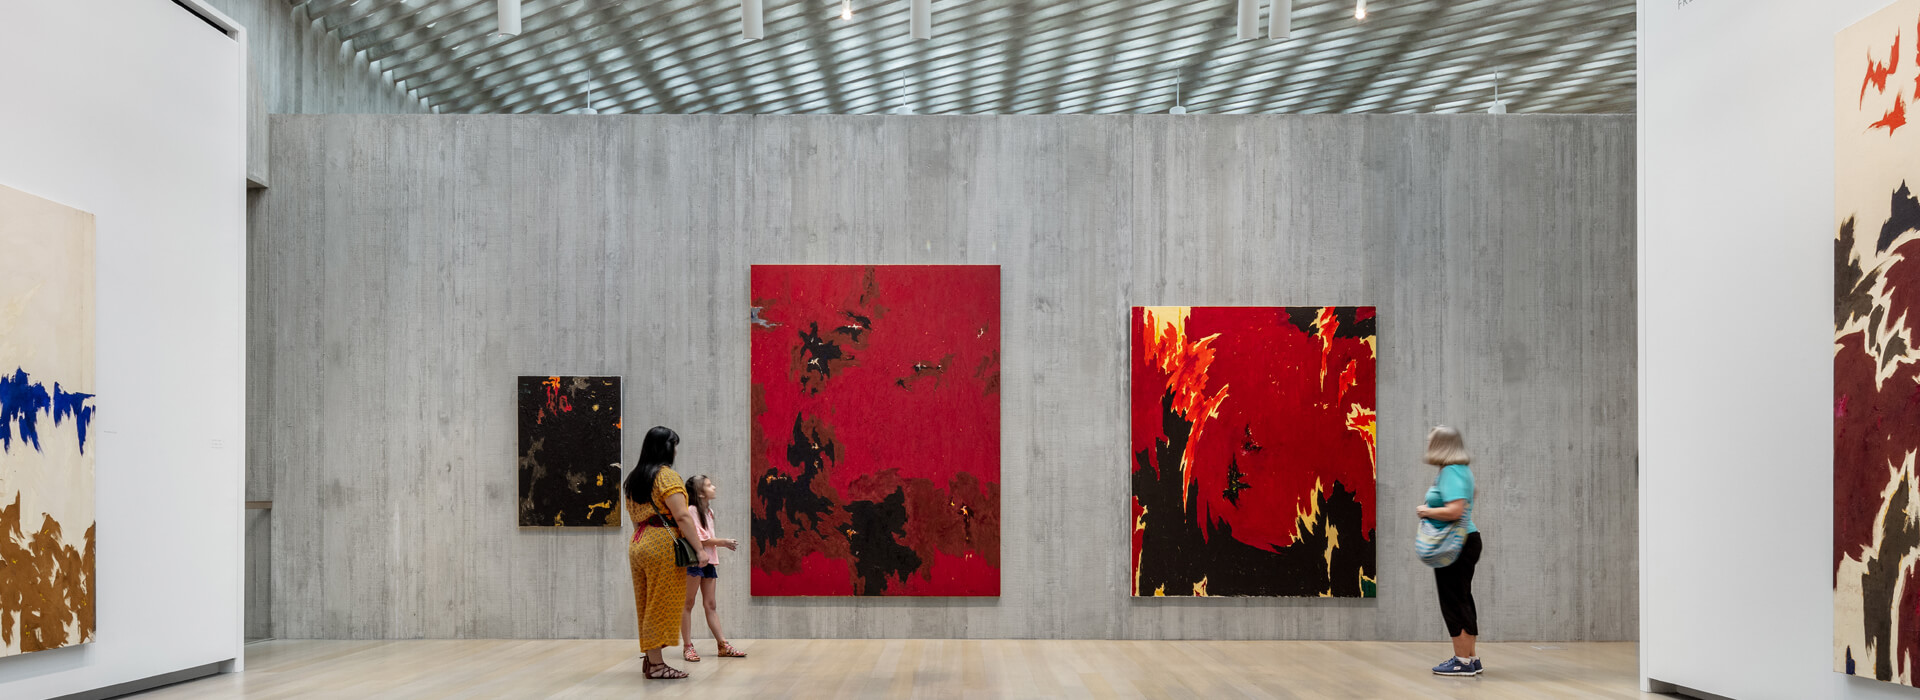 Woman and her daughter and another woman look at art in a large open gallery at the Clyfford Still Museum